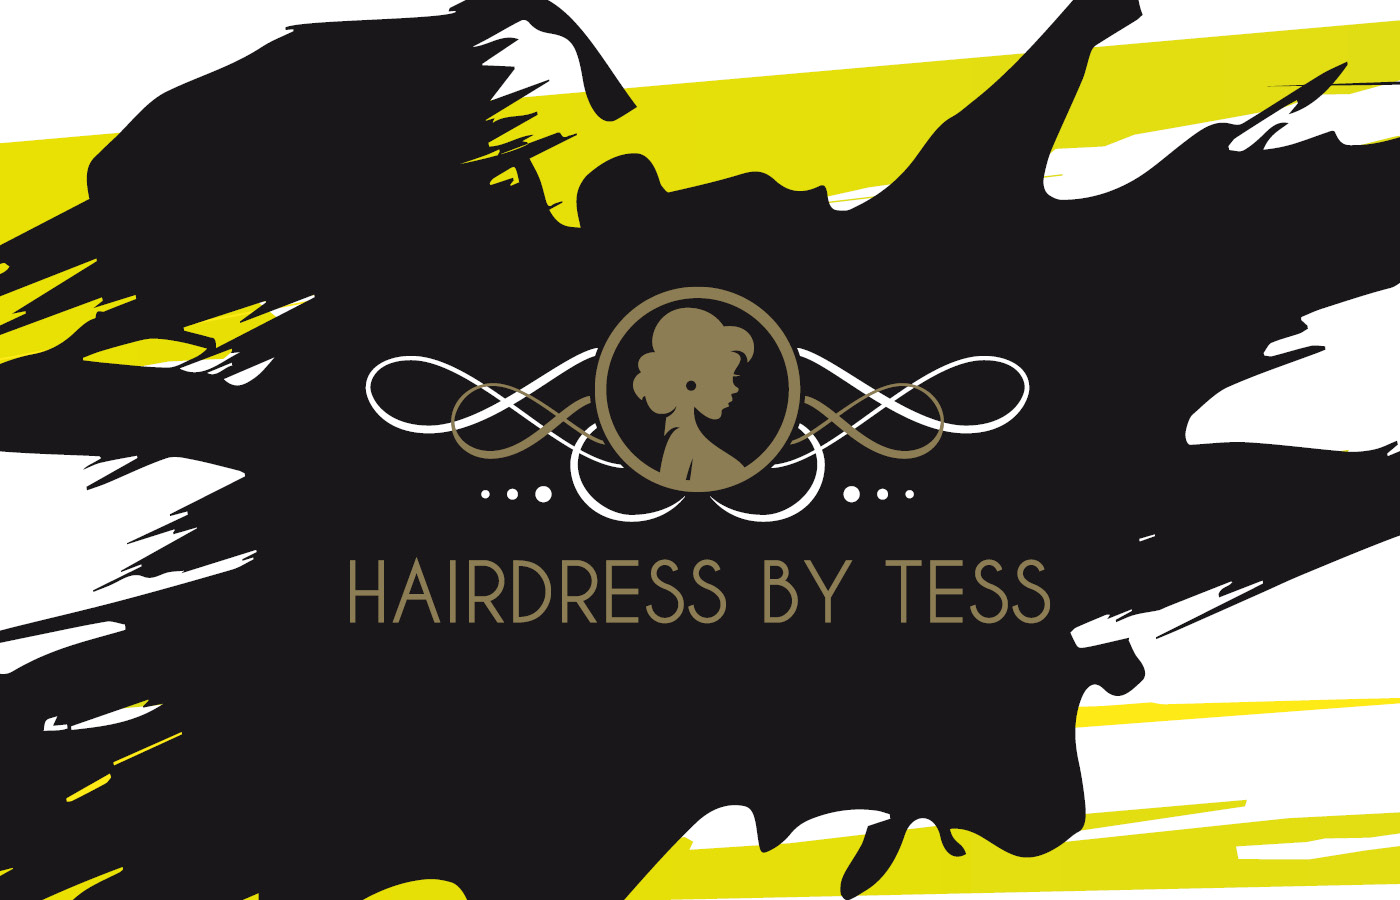 15 kp hairdress by tess